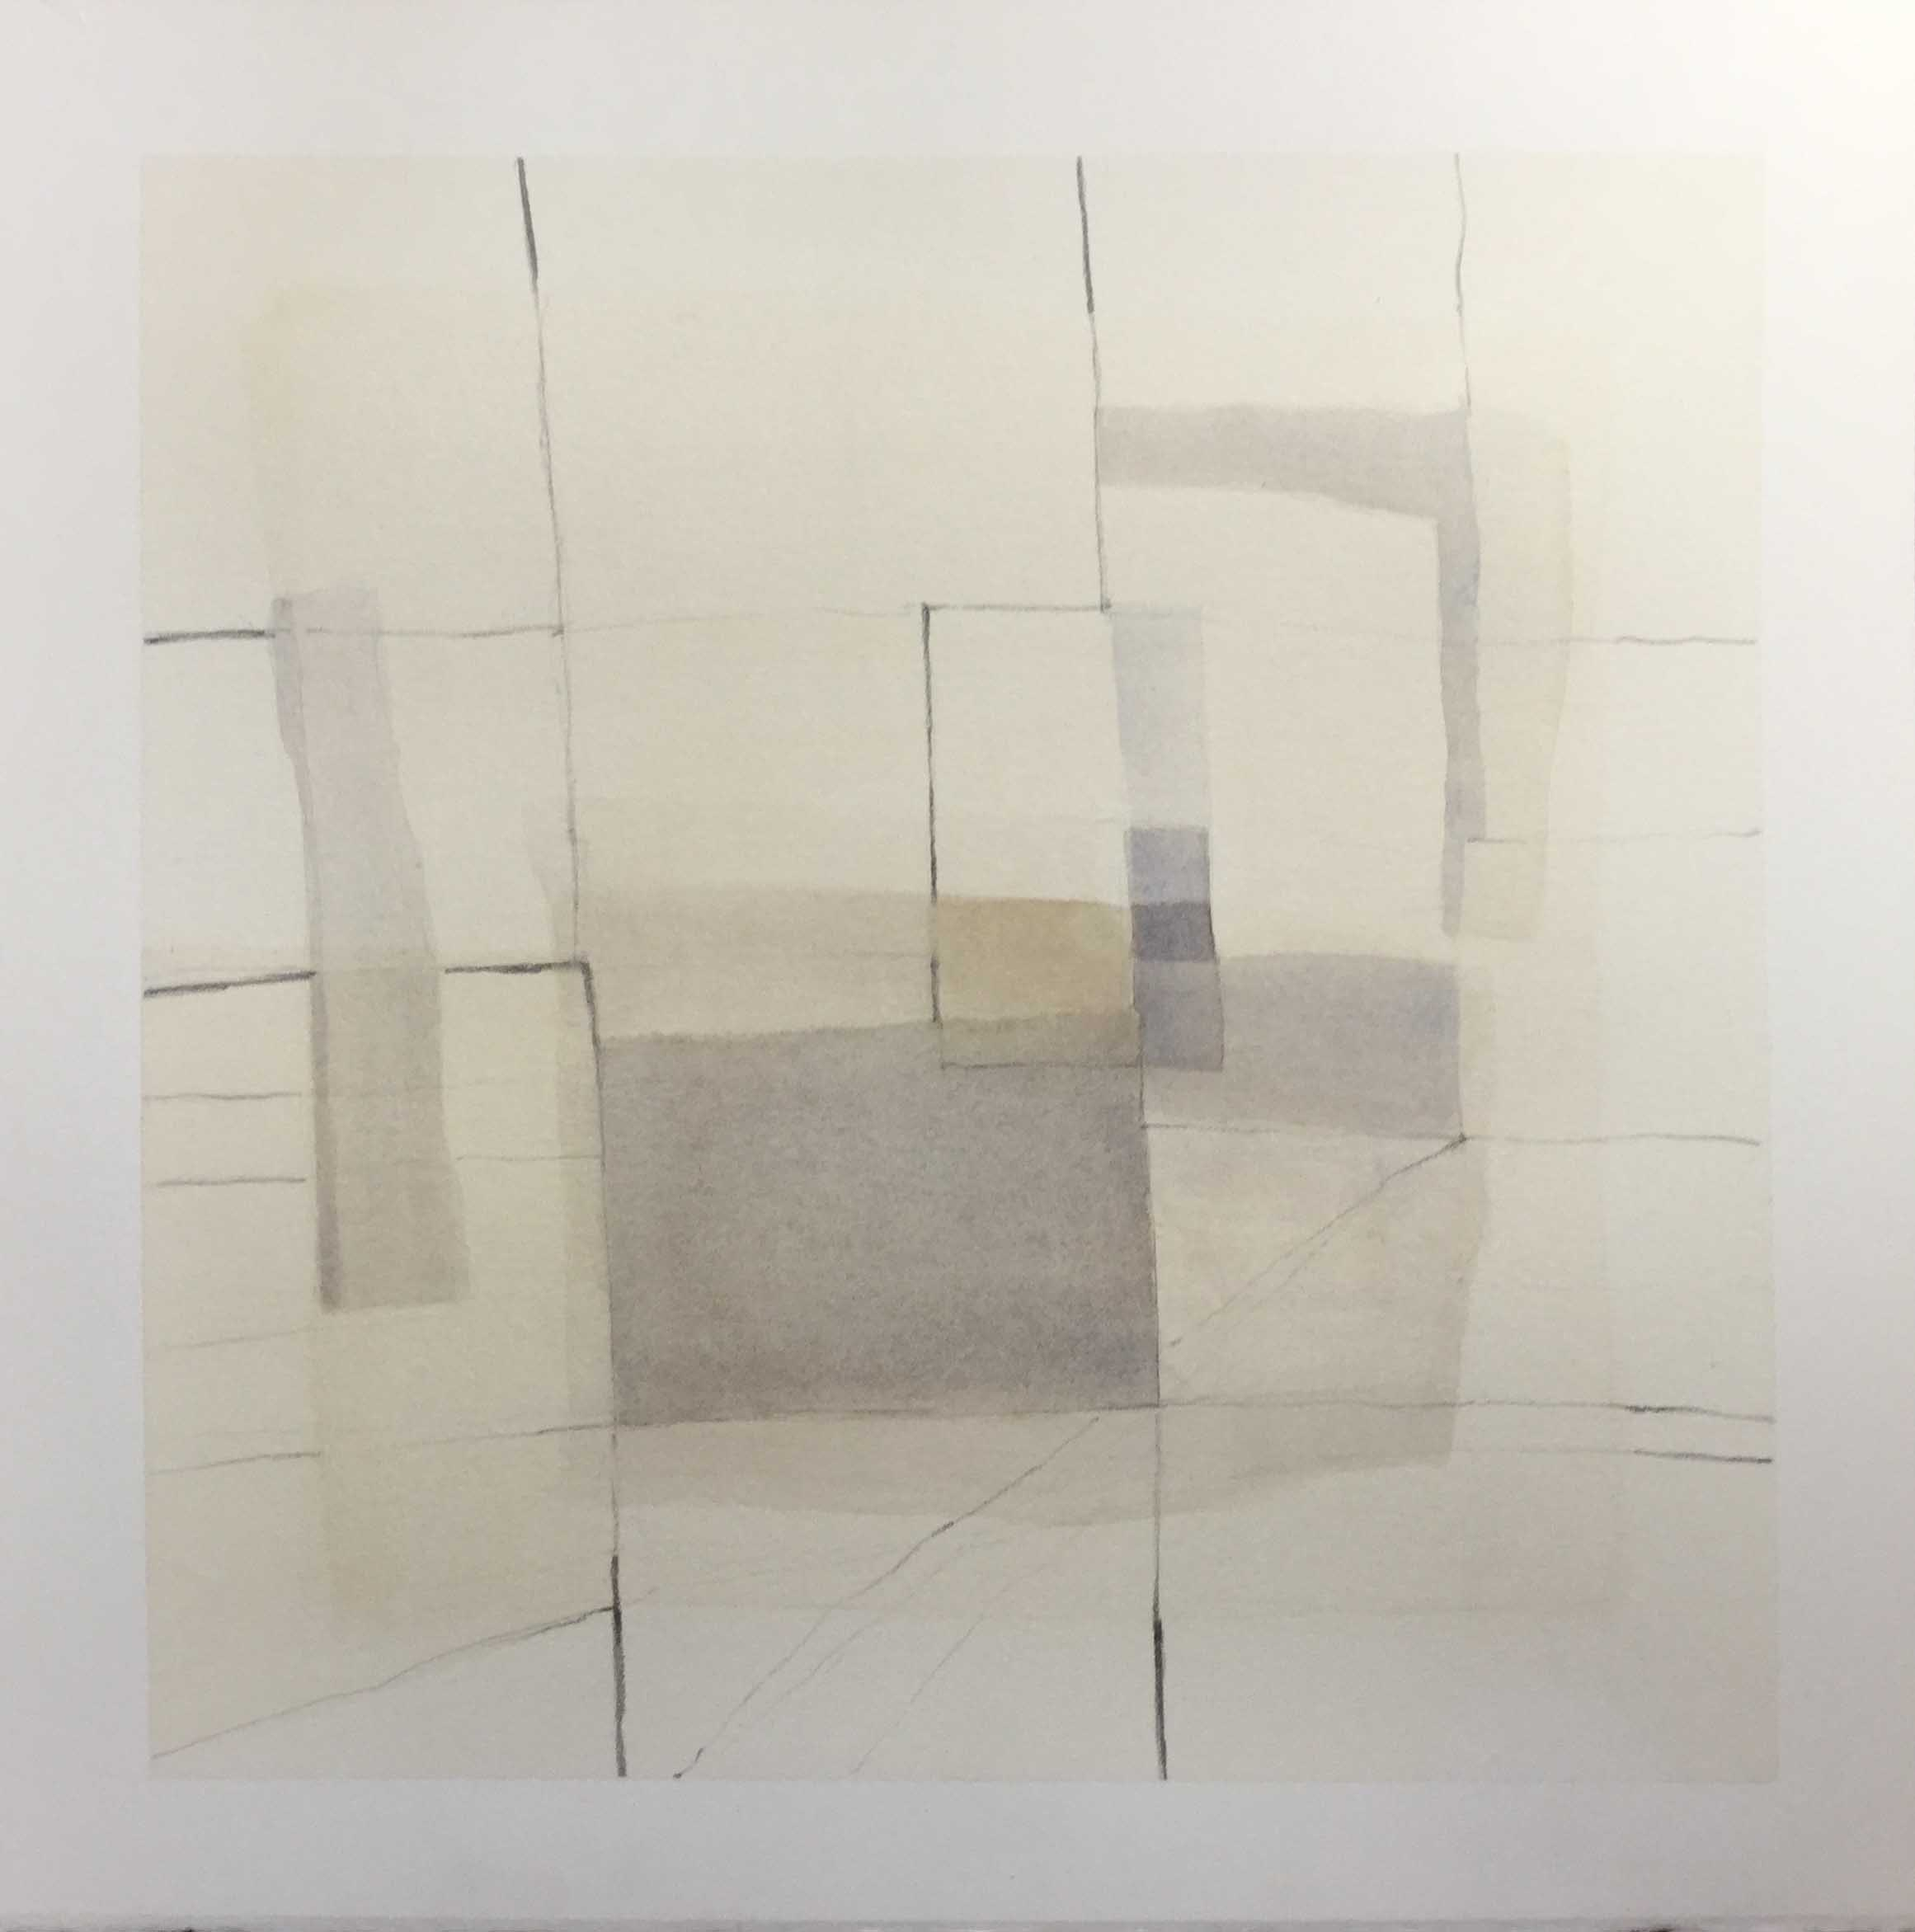 Esquinas Borrados I, 2016, watercolour and pencil on paper, 42 x 42 cm